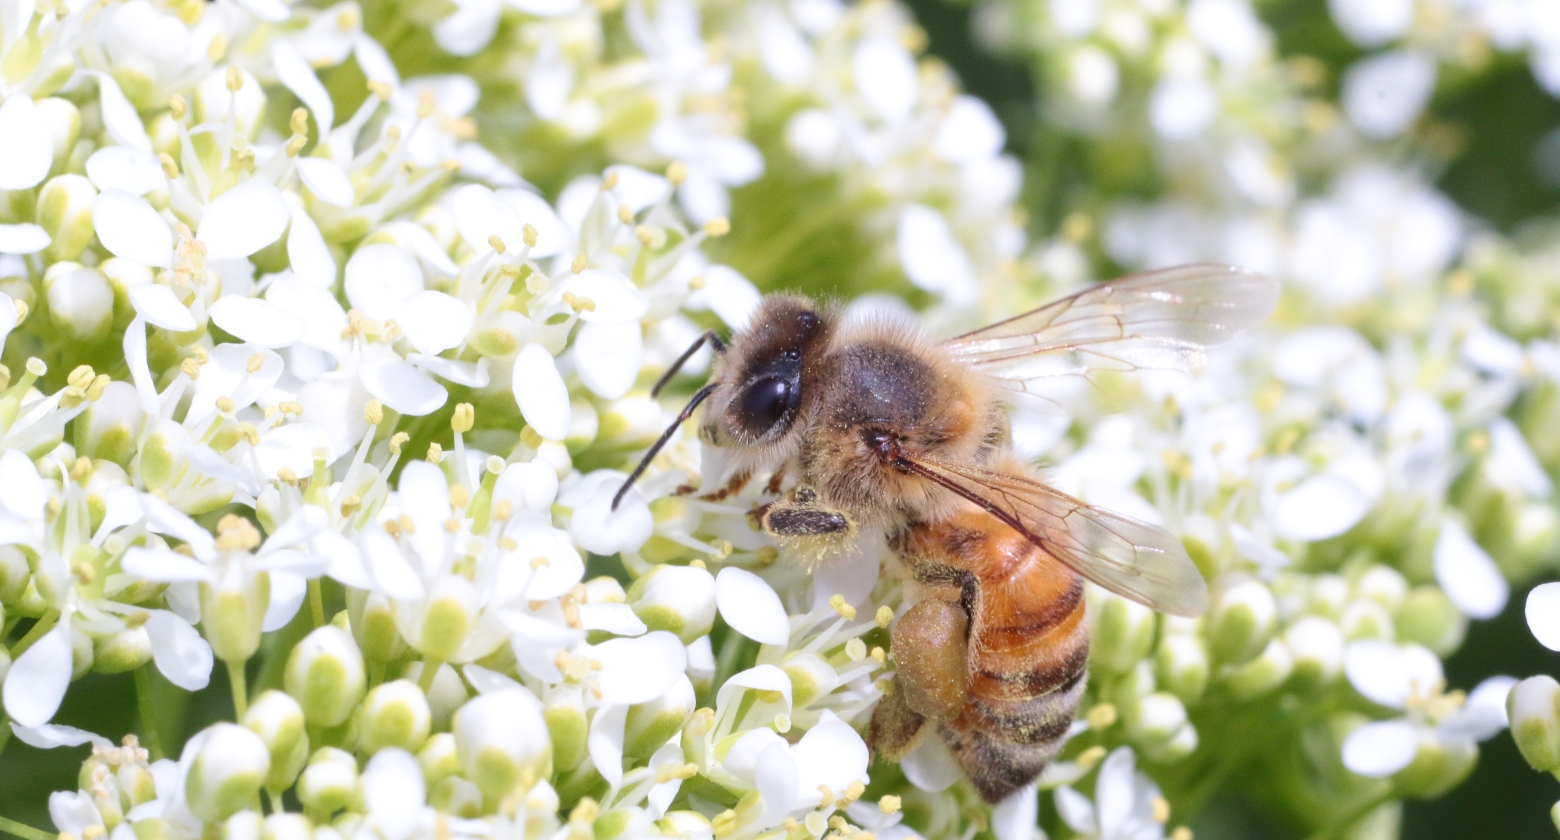 A close-up of a honeybee among a background of white flowers.